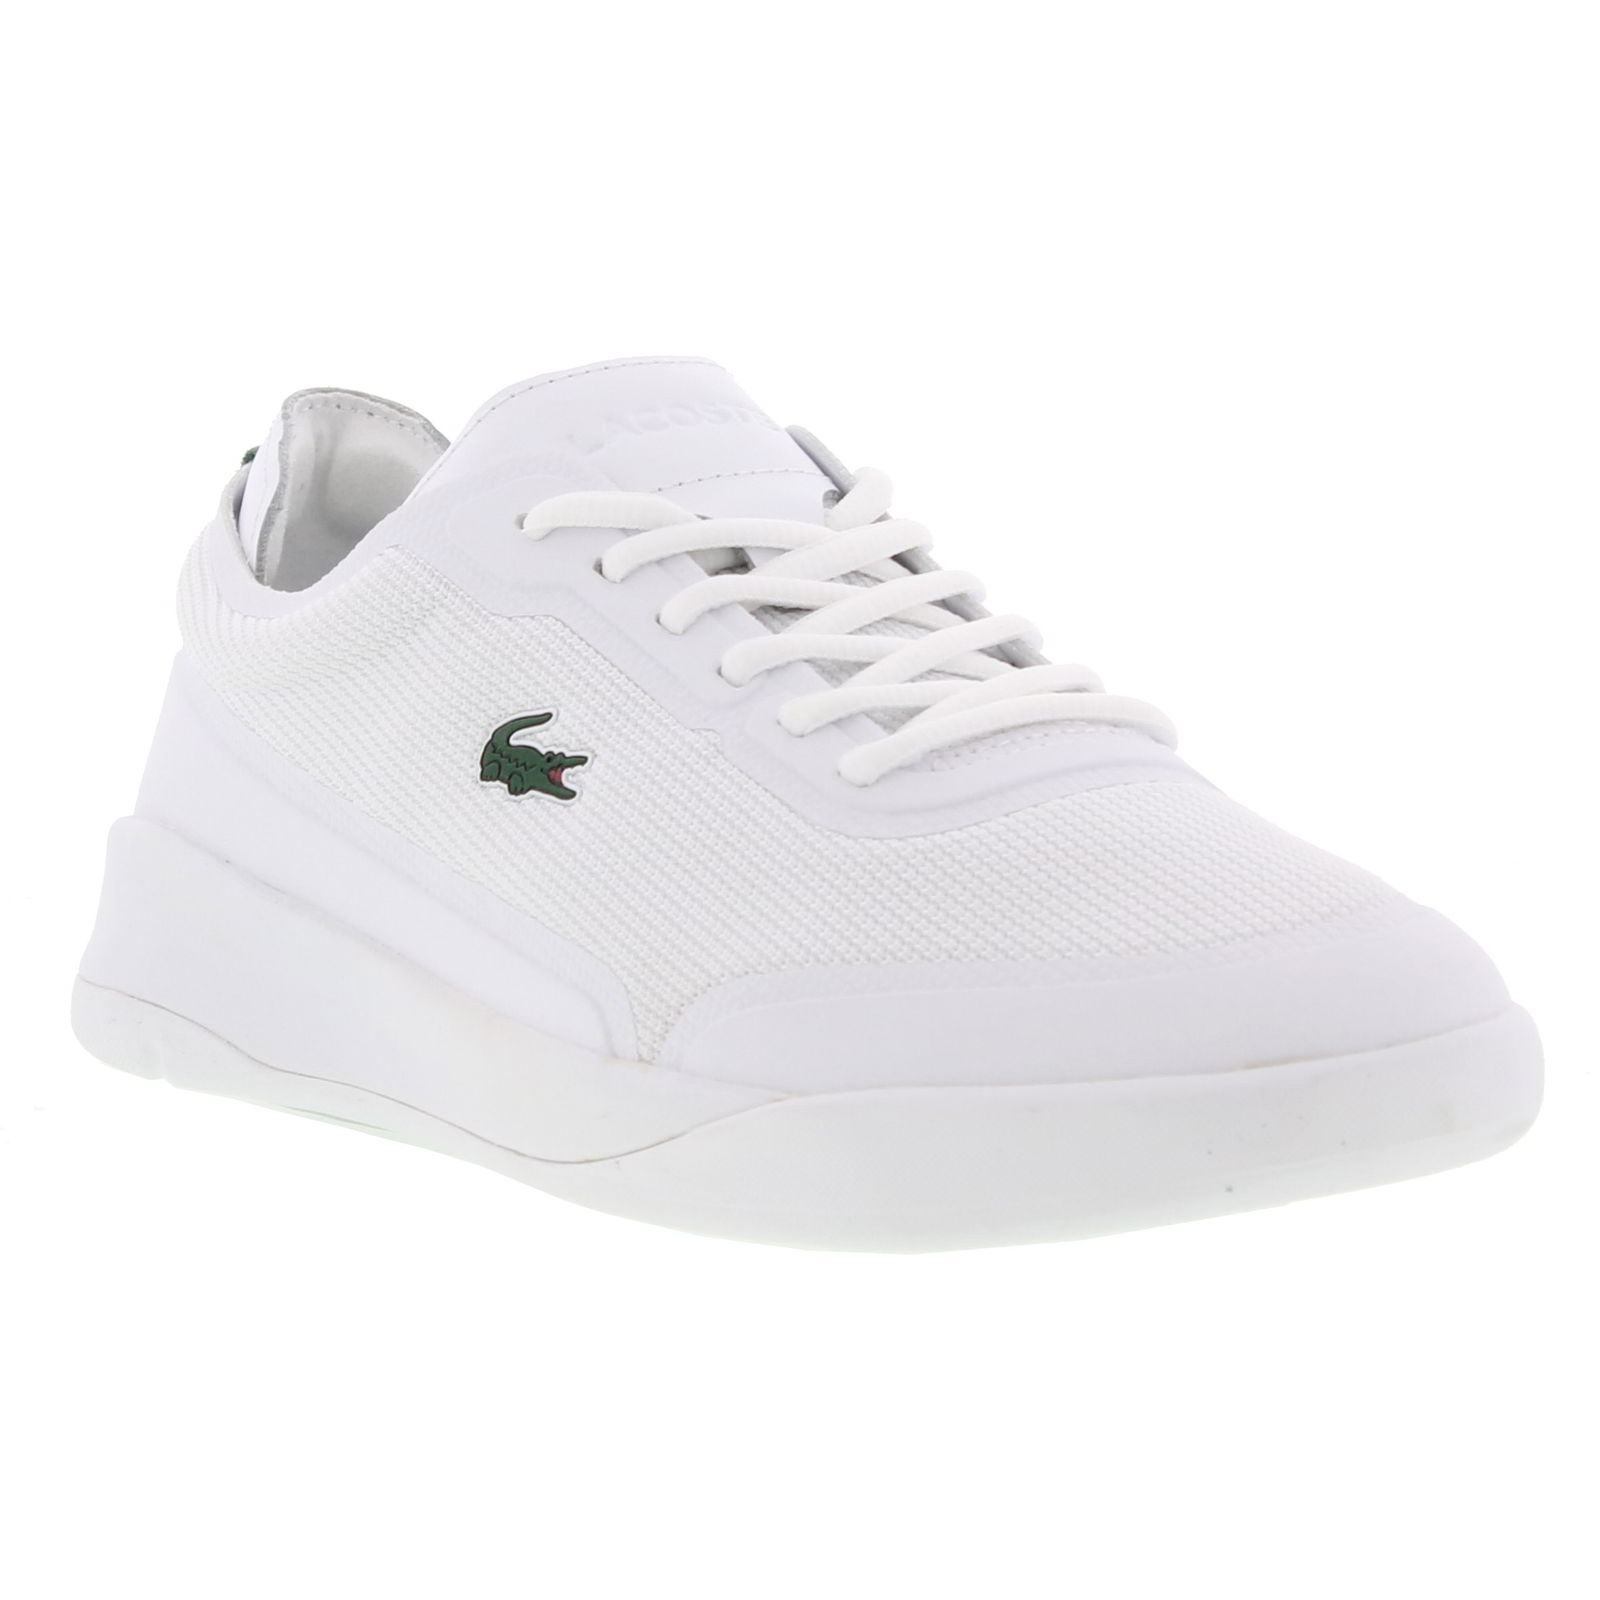 b2738f2b0f0b Details about Lacoste Lt Spirit Elite 117 4 SPM Mens White Trainers Shoes  Size 8-11